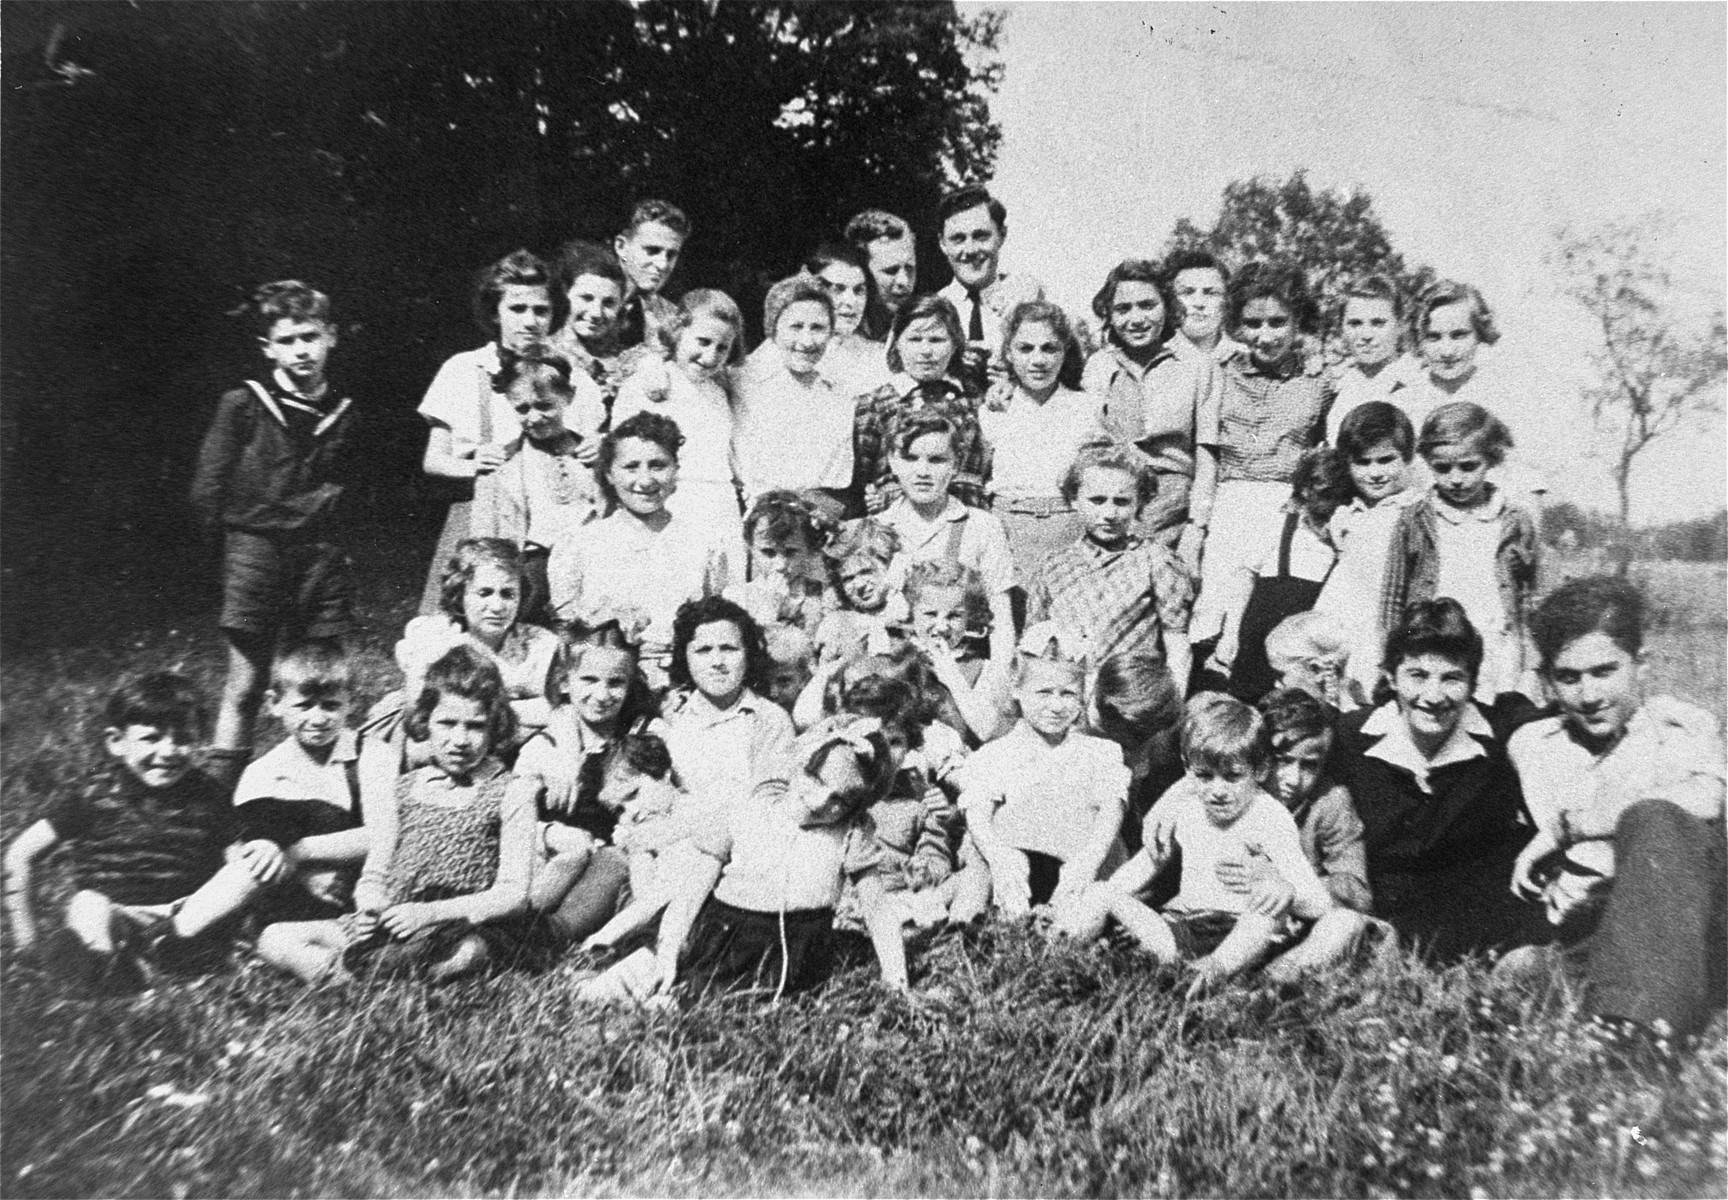 A group photograph of children in the Bergen-Belsen displaced persons' camp in 1946.